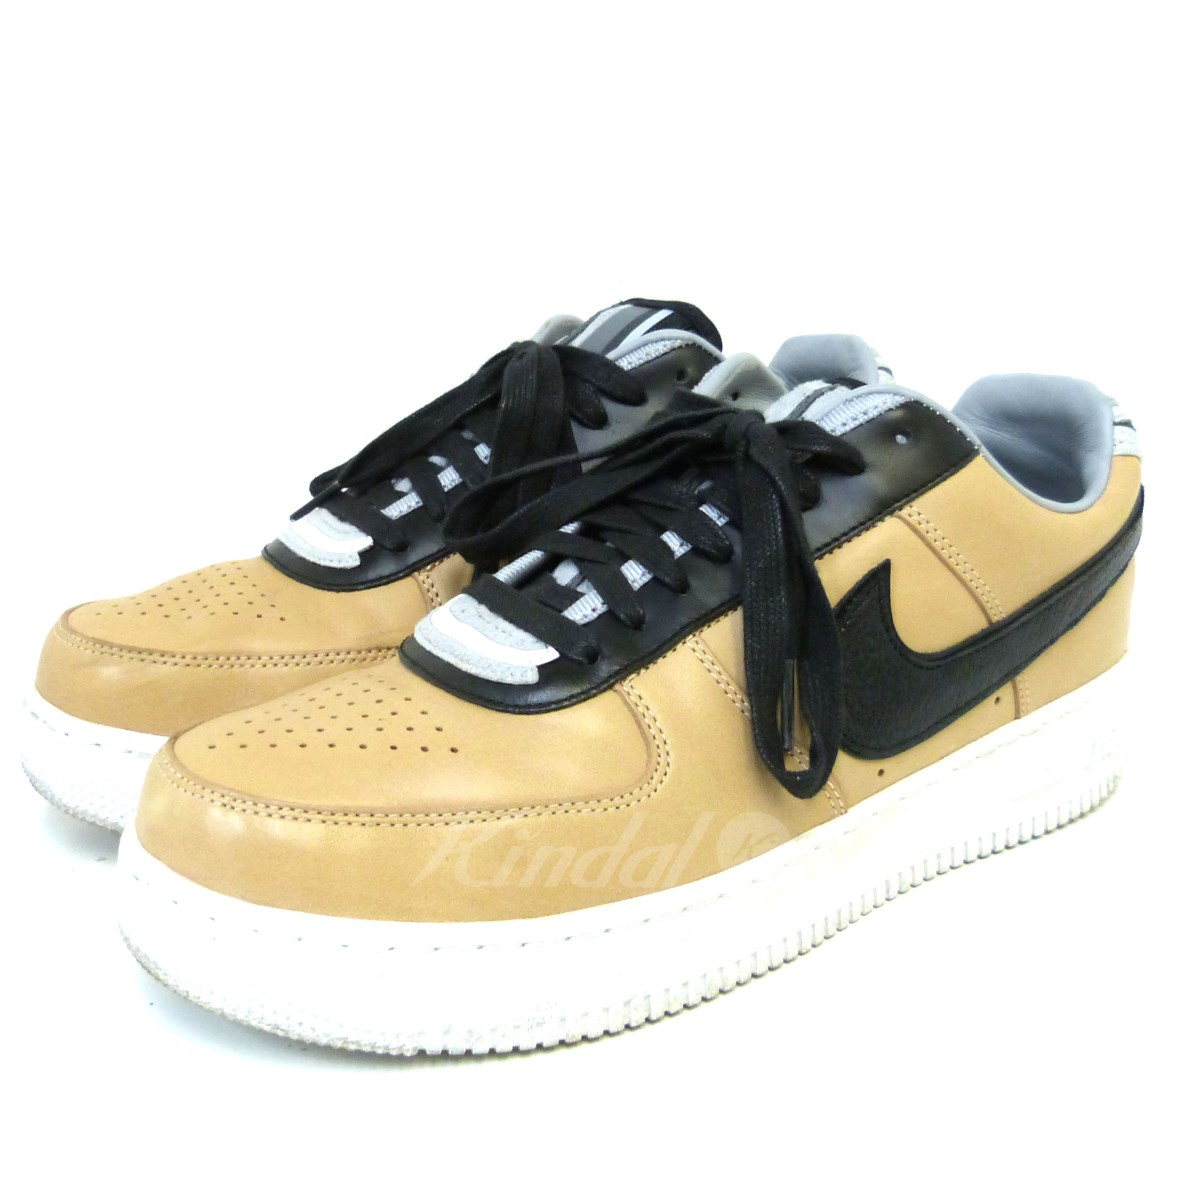 【中古】NIKE×Riccardo Tisci 「AIR FORCE1 SP/TISCI」 レザースニーカー 【送料無料】 【045189】 【KIND1327】